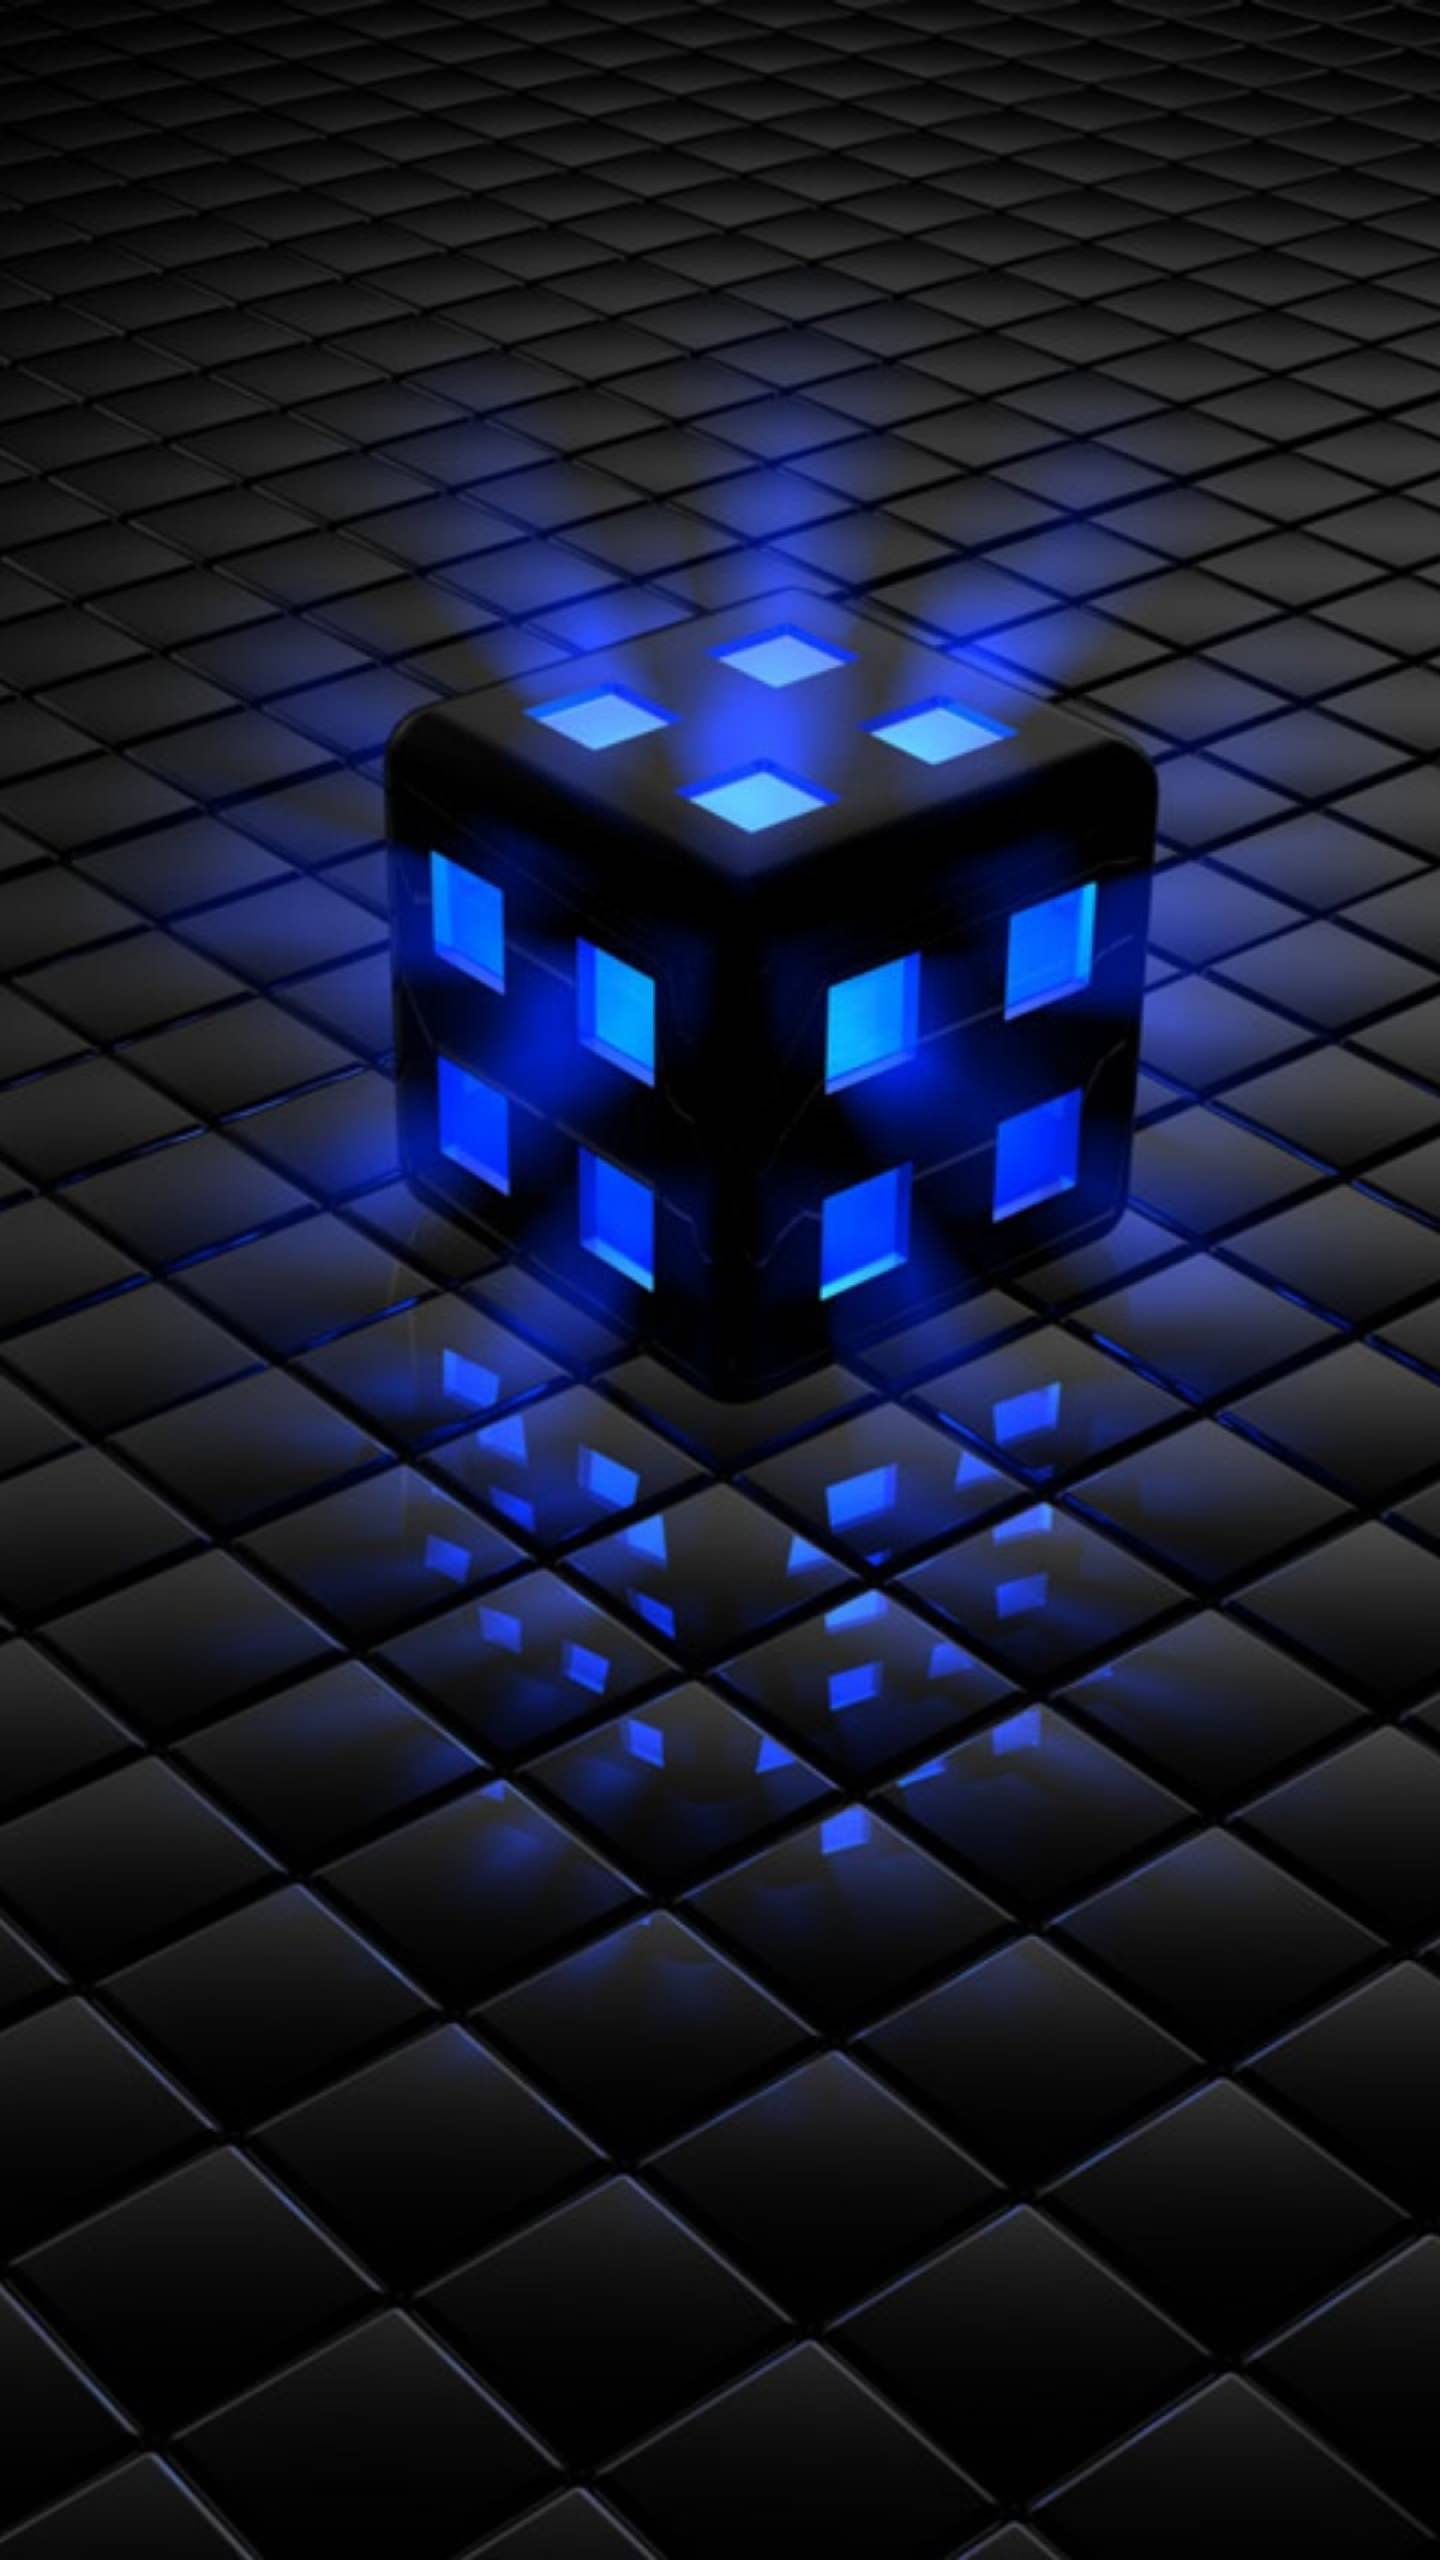 Cool Black And Blue Background : black, background, Black, Android, Wallpapers, Wallpaper